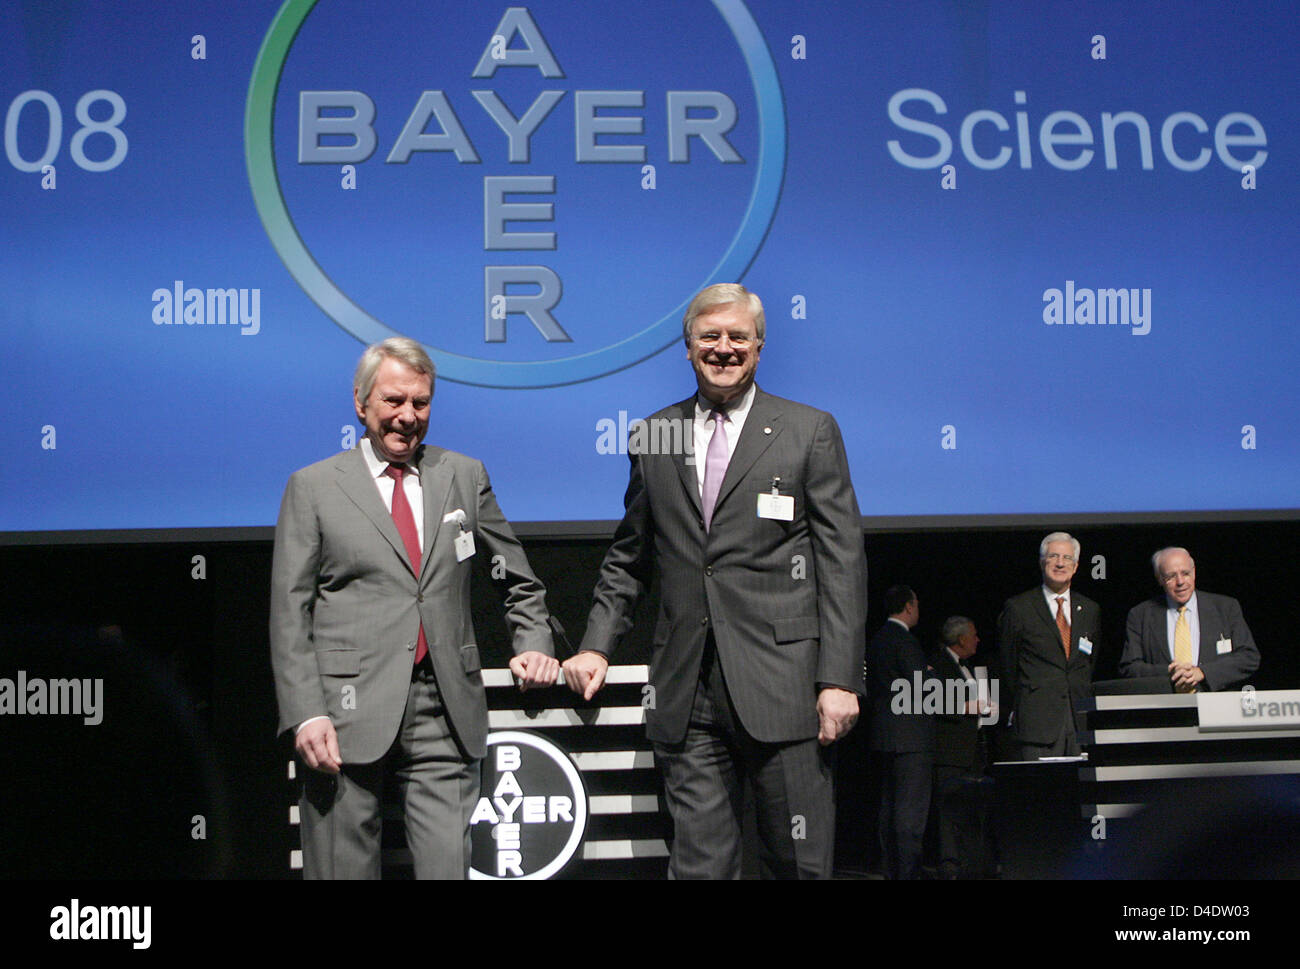 Werner Ag ceo of bayer ag werner wenning r and chairman of the supervisory